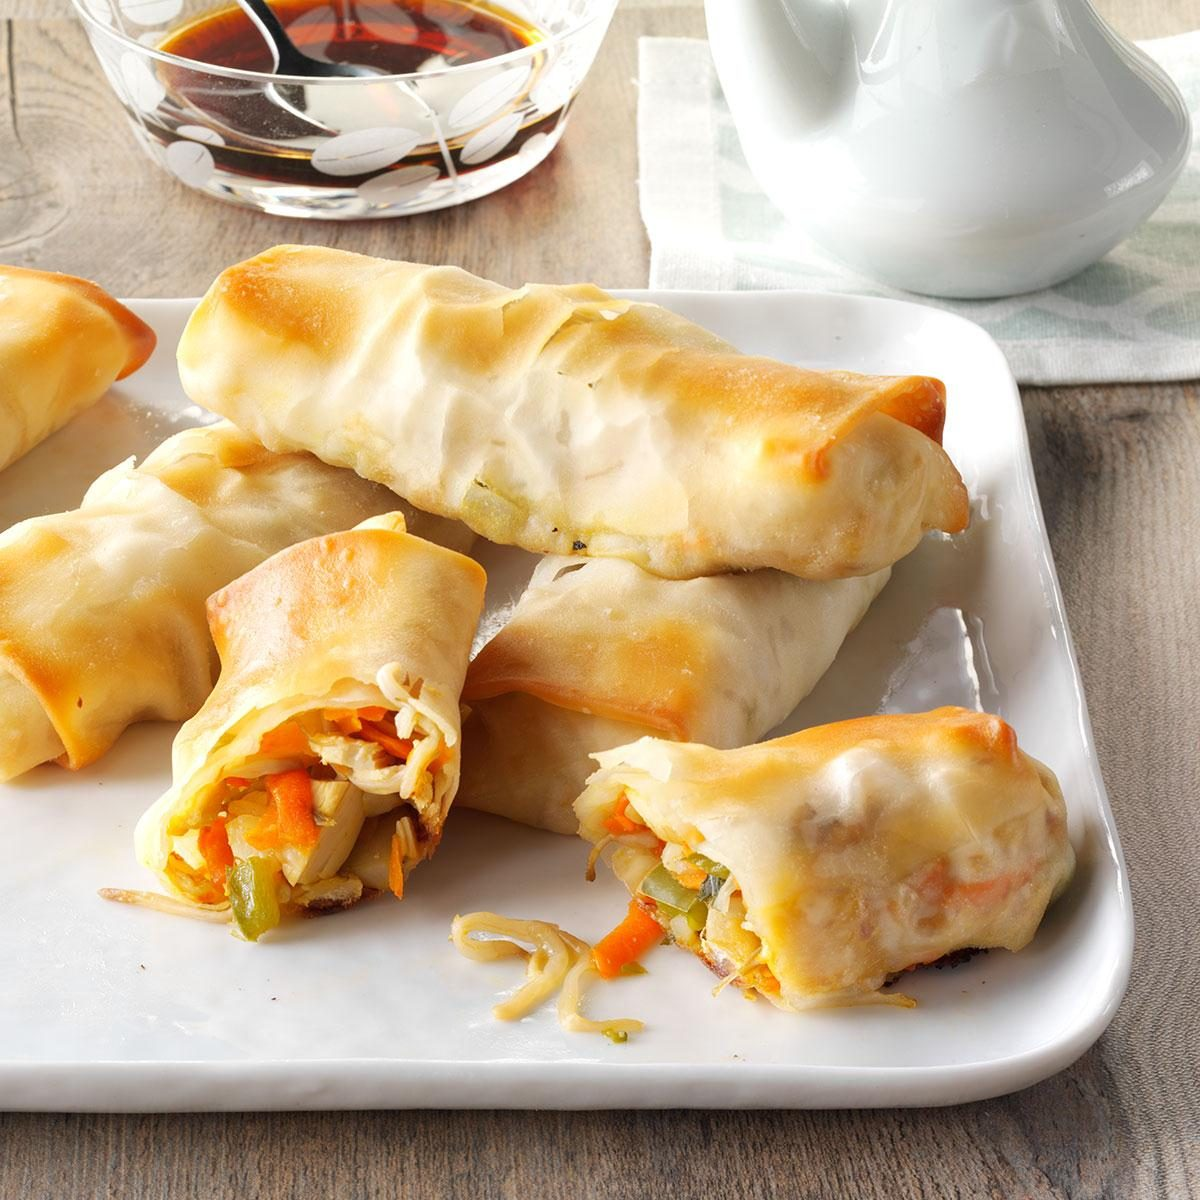 Inspired by: PF Chang's House-Made Chicken Egg Rolls